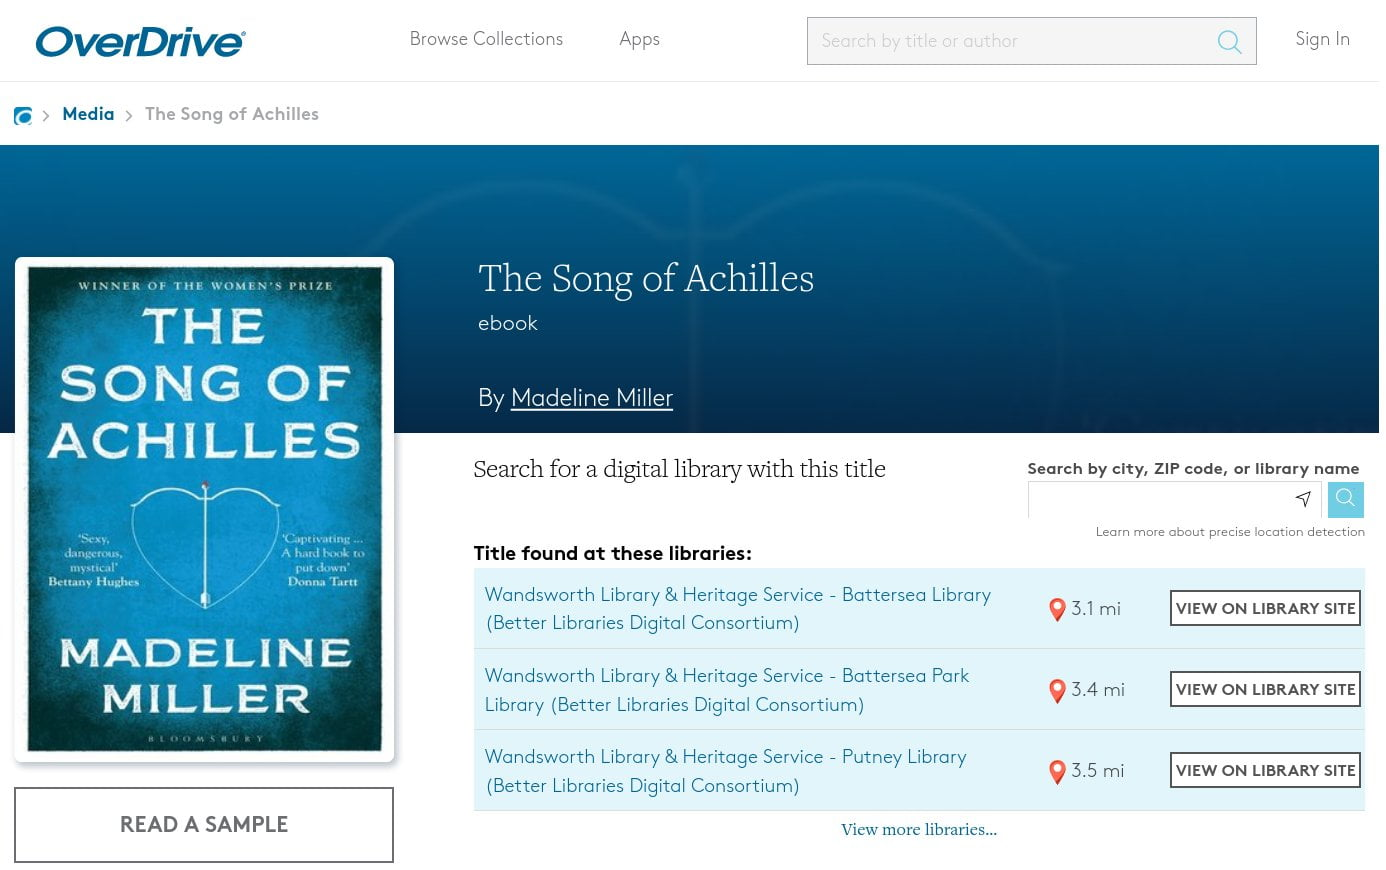 OverDrive web page showing which local libraries have the book to borrow.